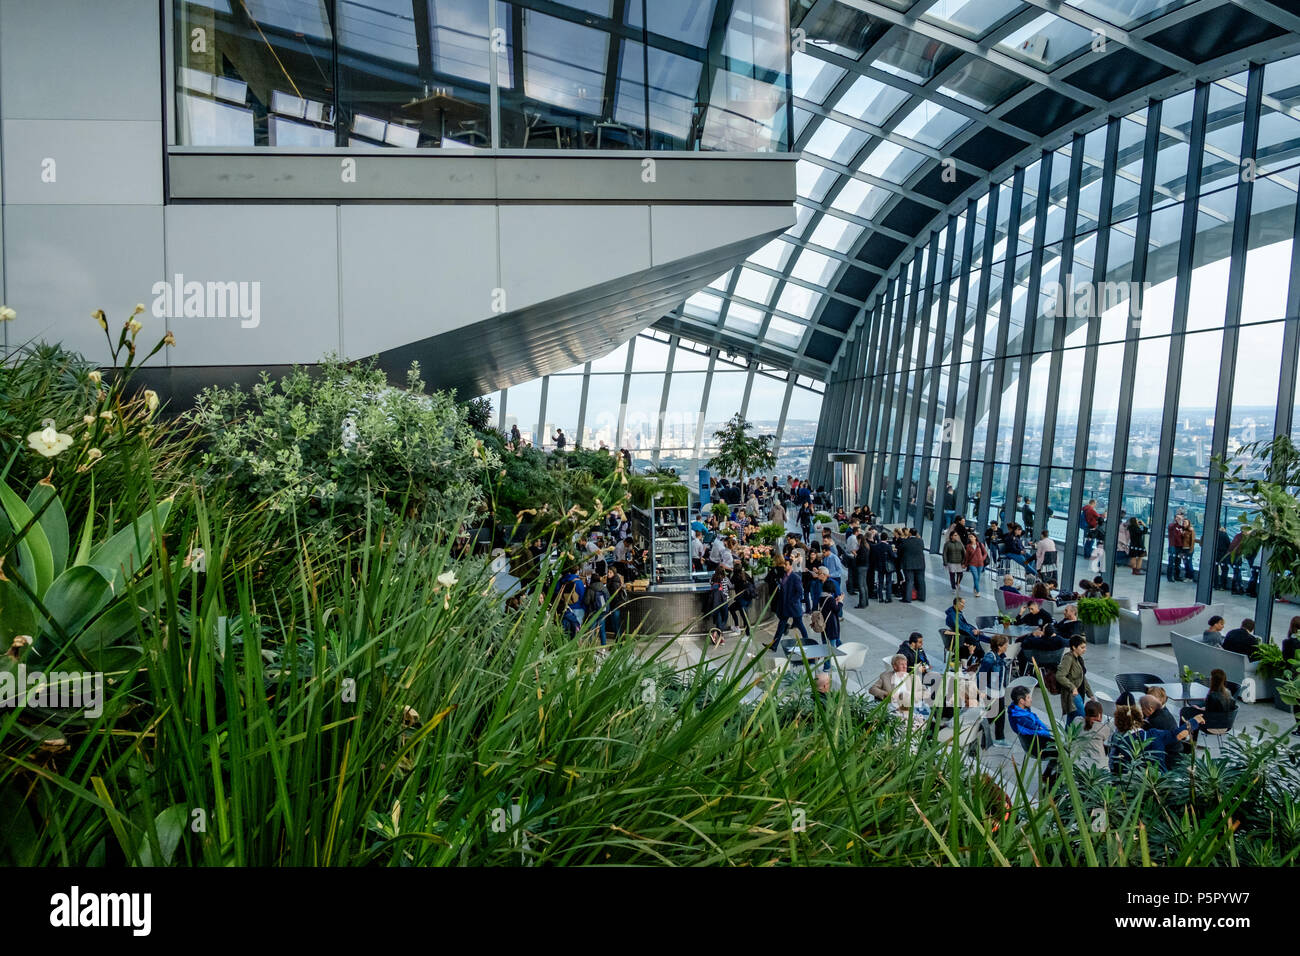 People socializing, taking refreshments and enjoying the view at  the Sky Garden, 20 Fenchurch St. Known as the Walkie Talkie. Foliage in foreground. - Stock Image